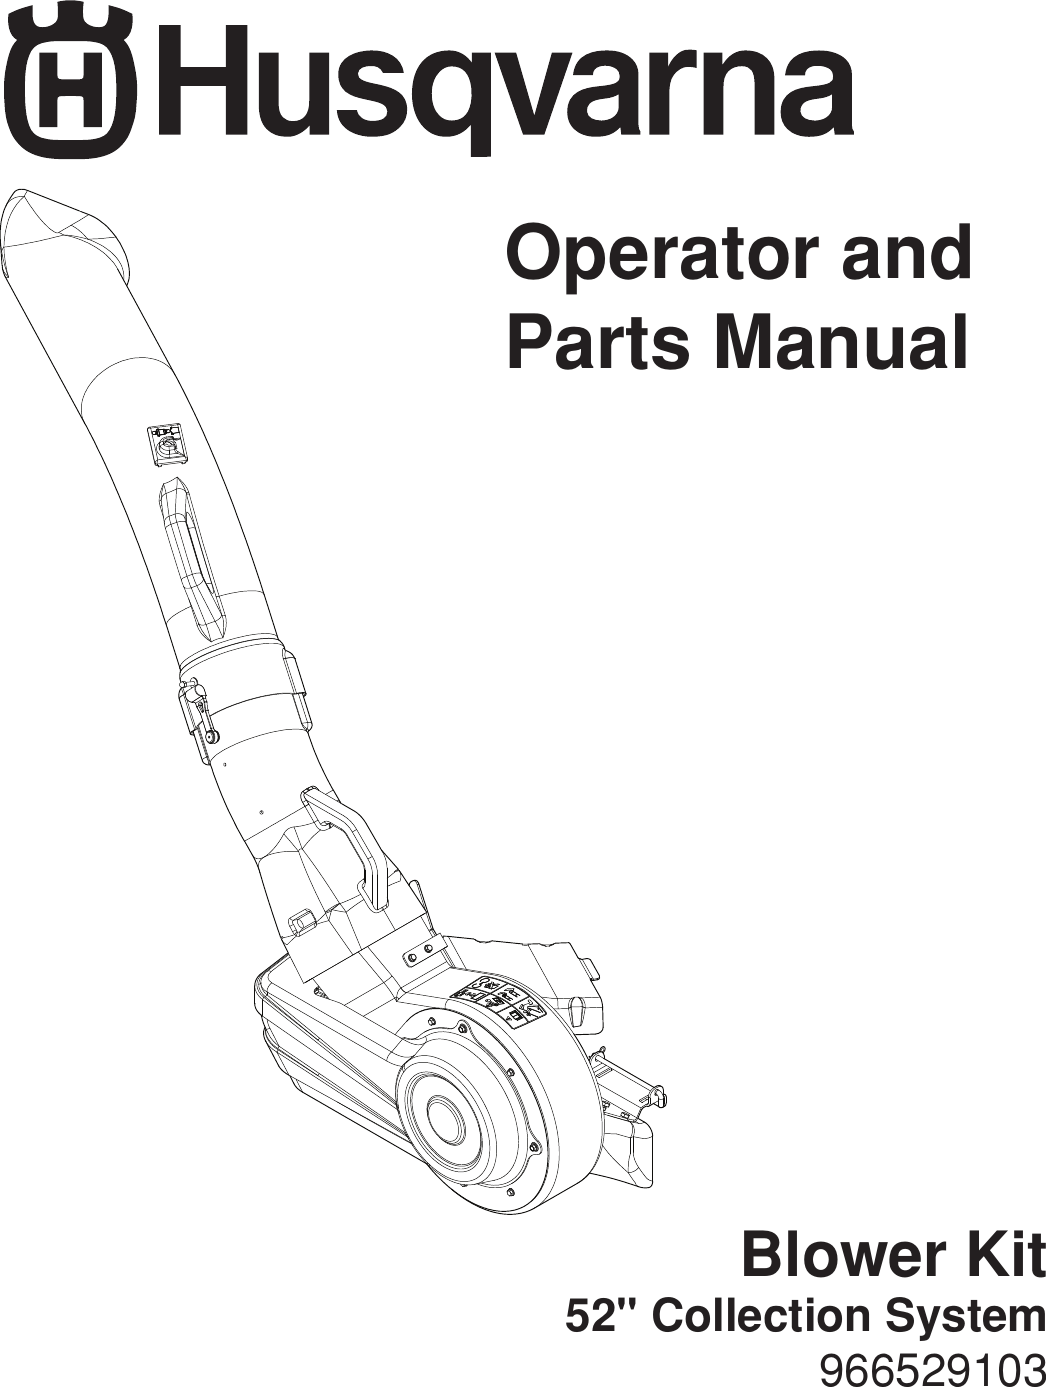 Husqvarna 966529103 Users Manual OM, H352F 52 COLLECTION